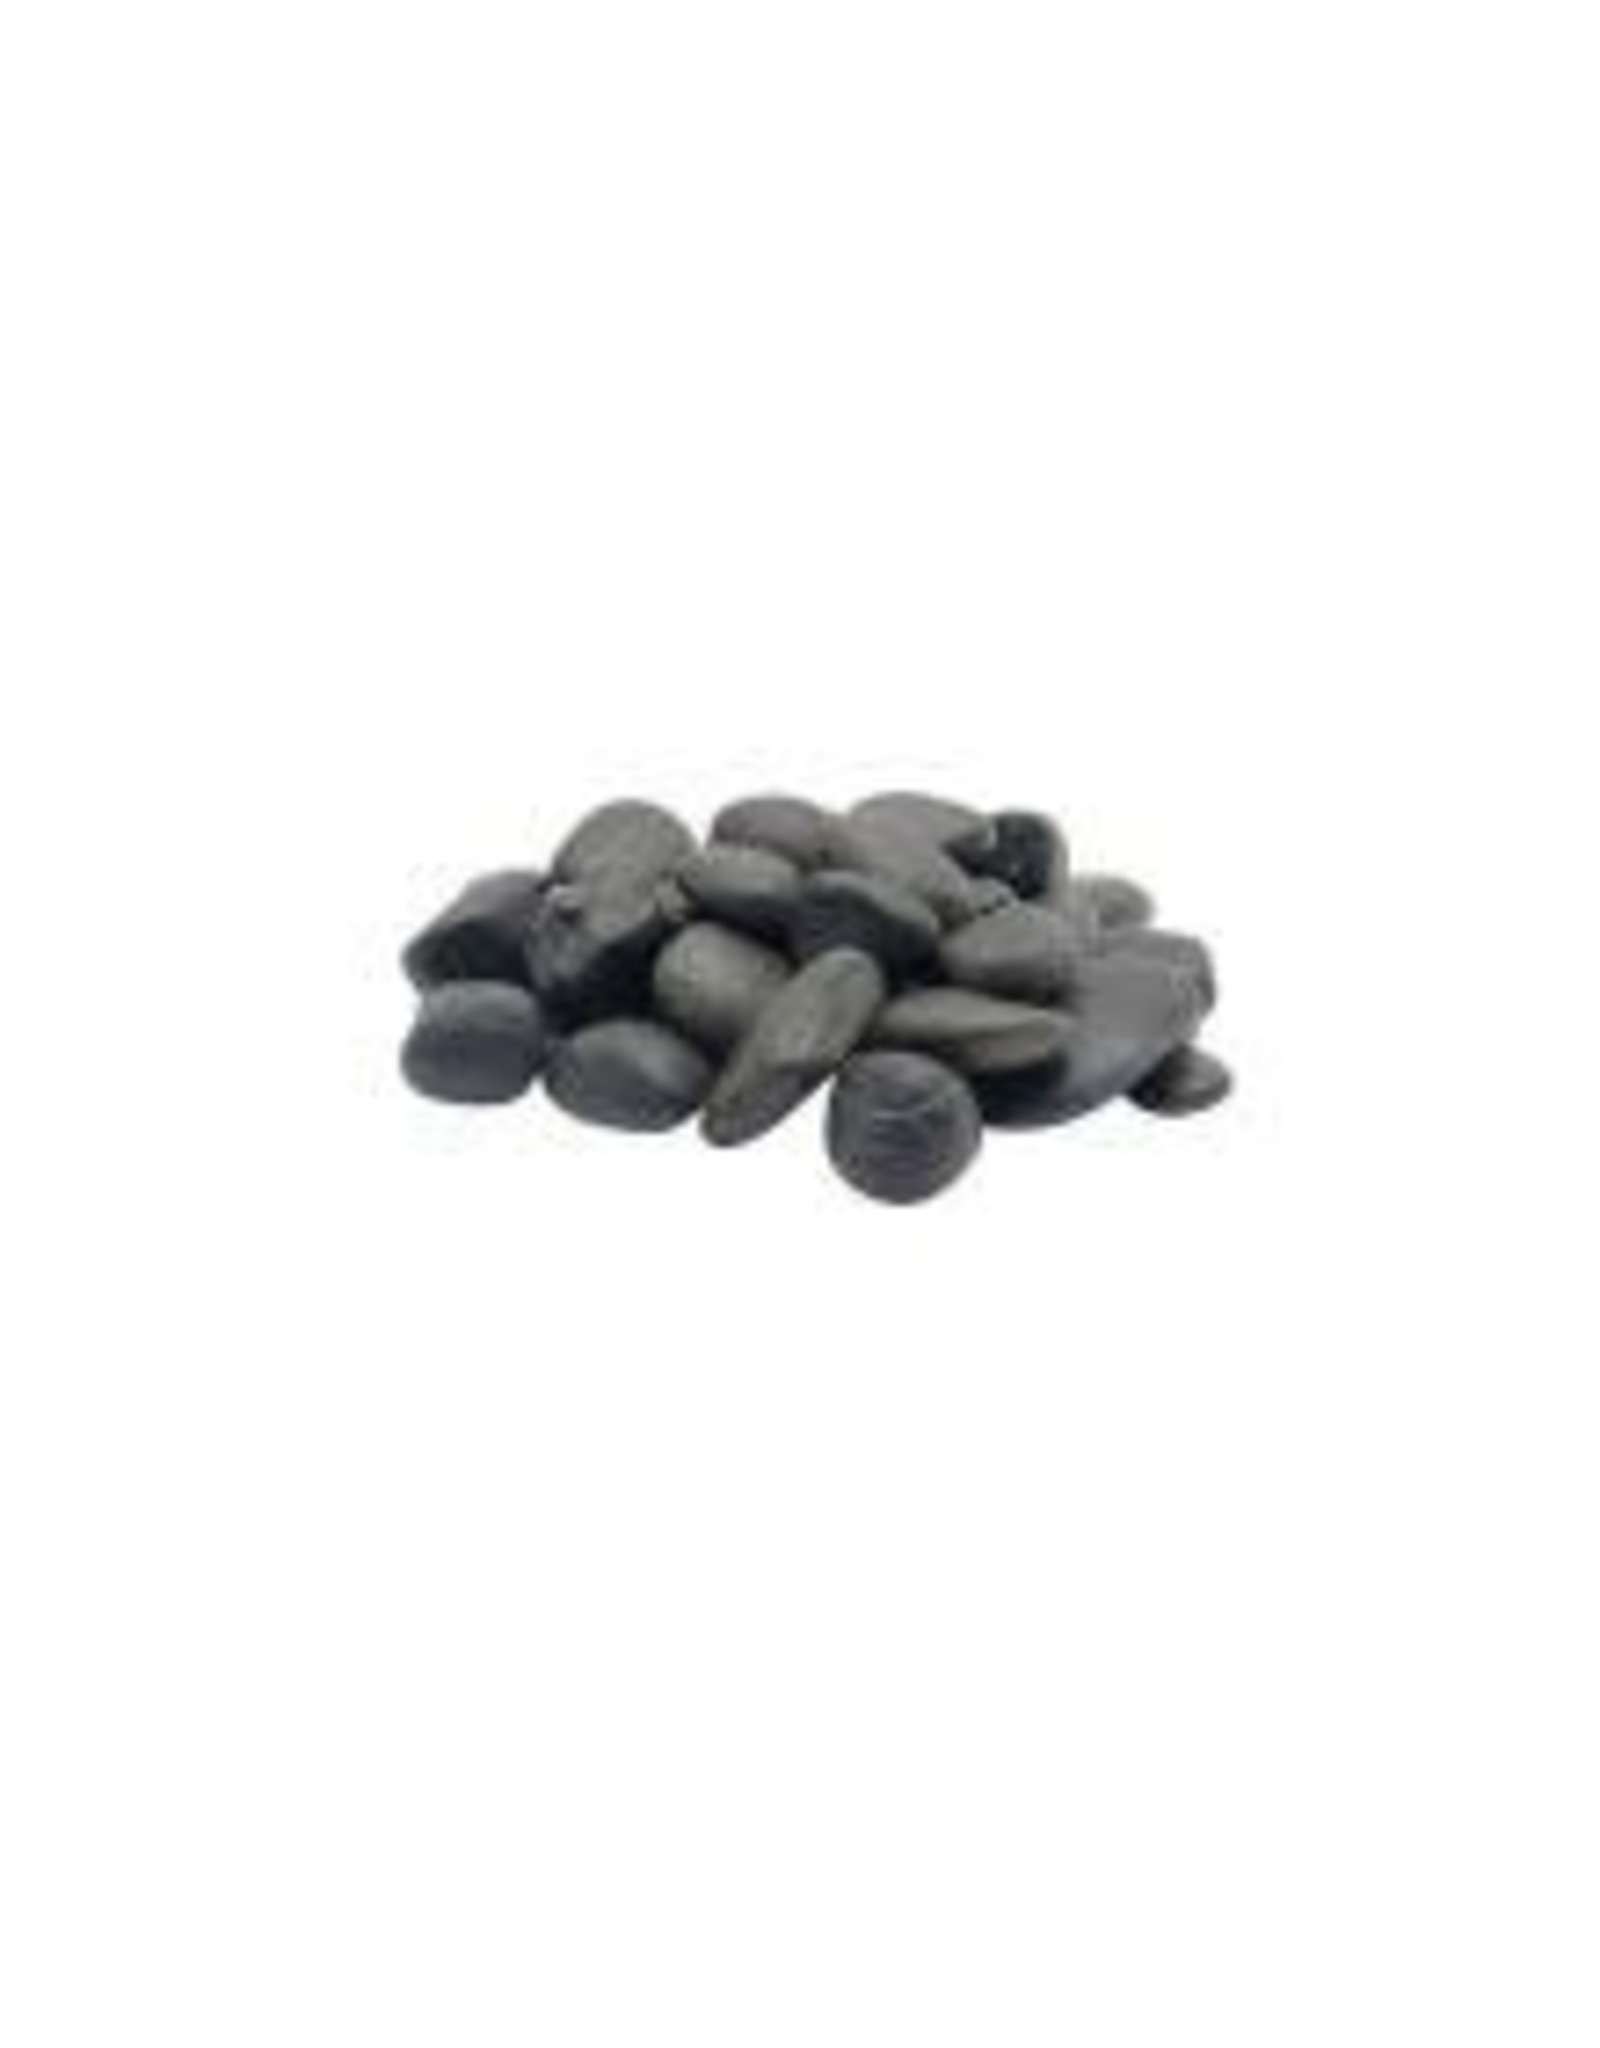 Marina Marina Natural Beach Pebble Black 2kg